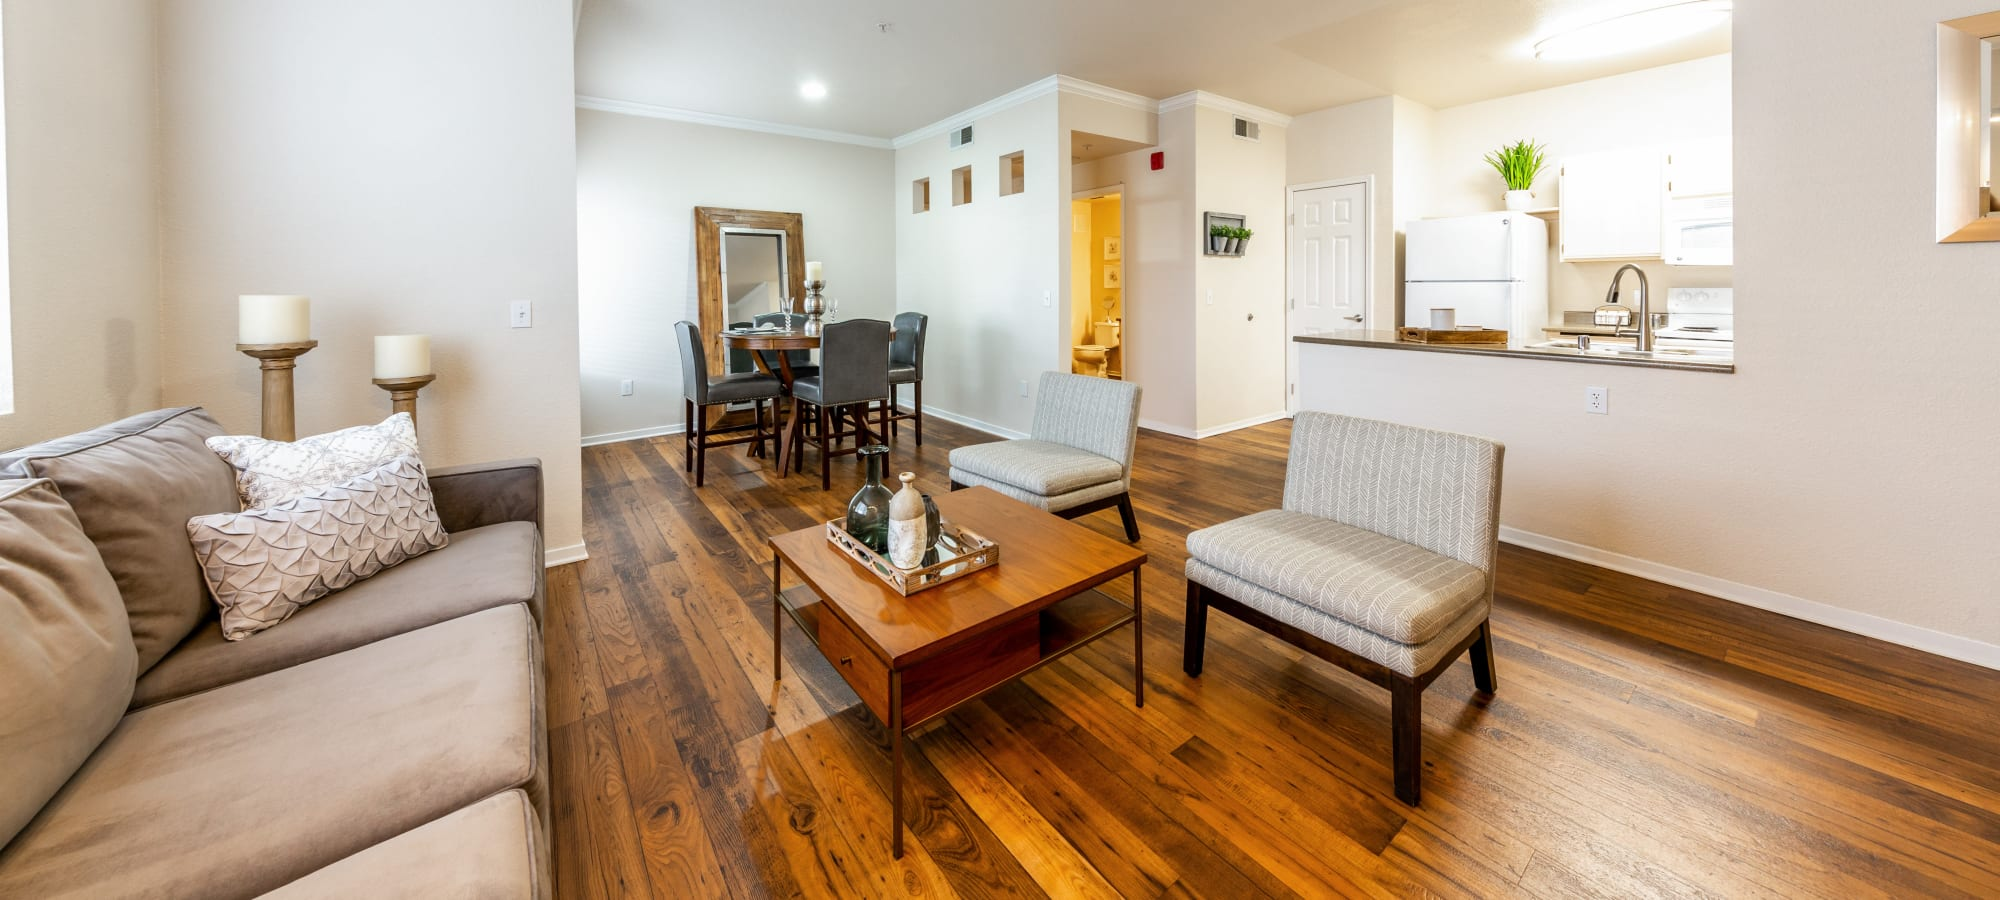 Floor plans at The Fairmont at Willow Creek in Folsom, California